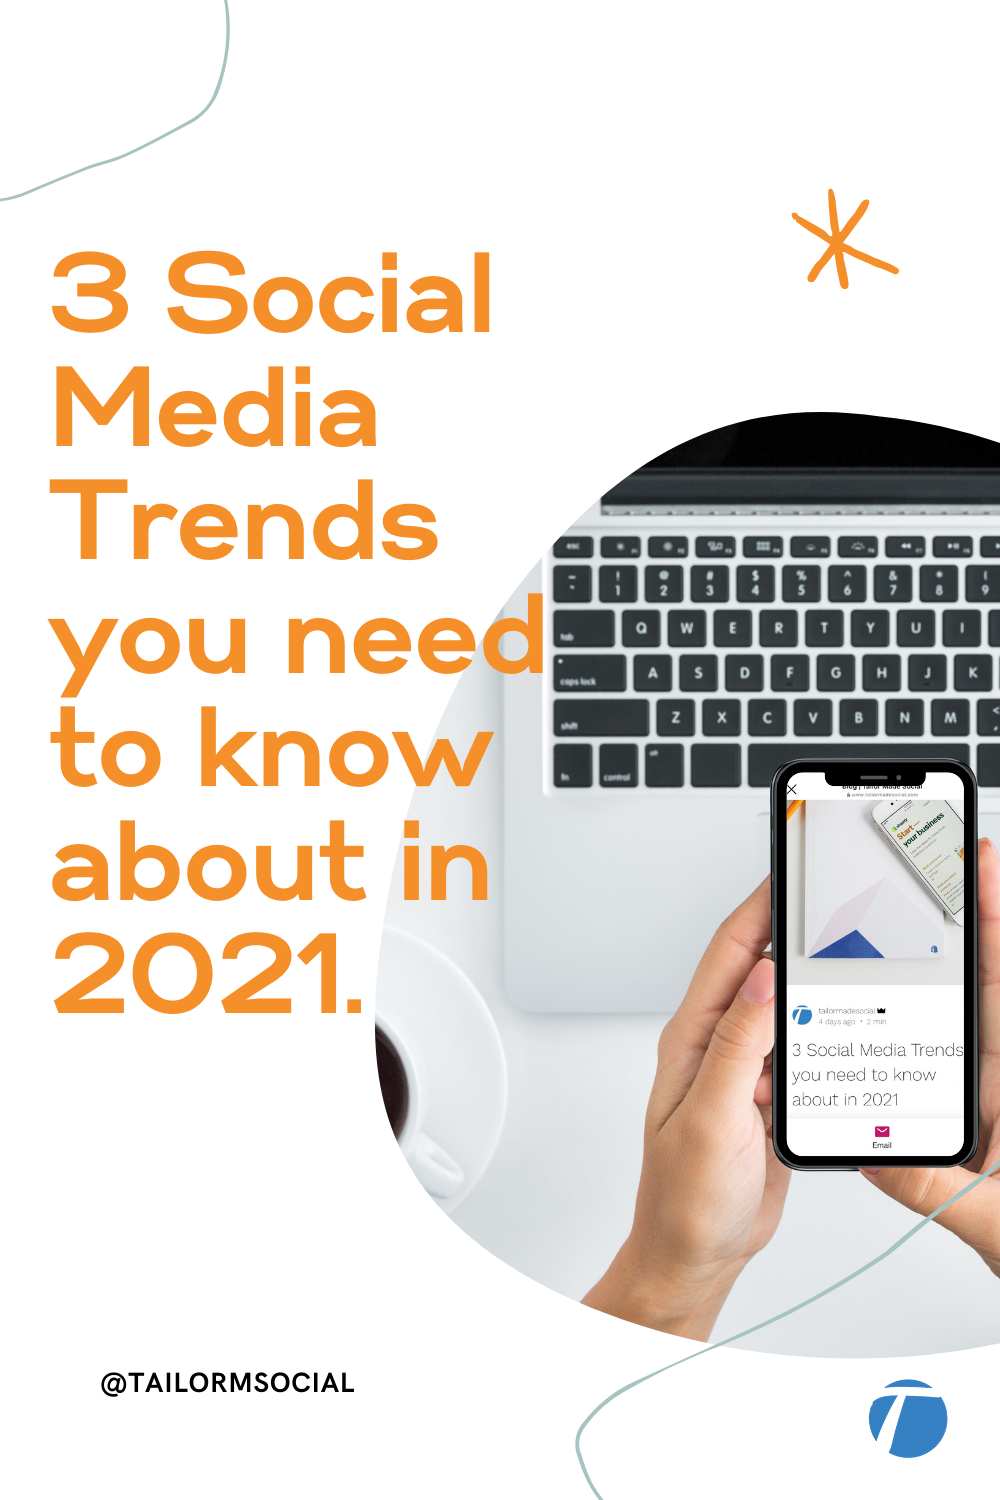 3 Social Media Trends You Need to know about in 2021 blog post image